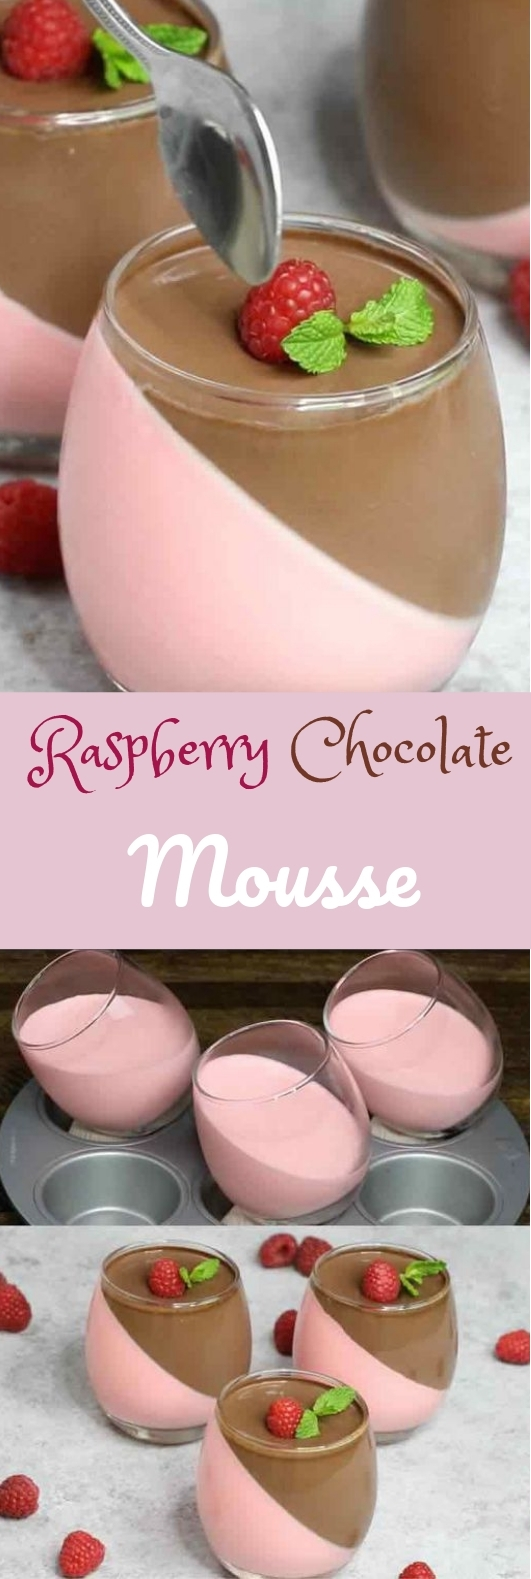 Raspberry Chocolate Mousse #deliciousrecipe #dessertidea